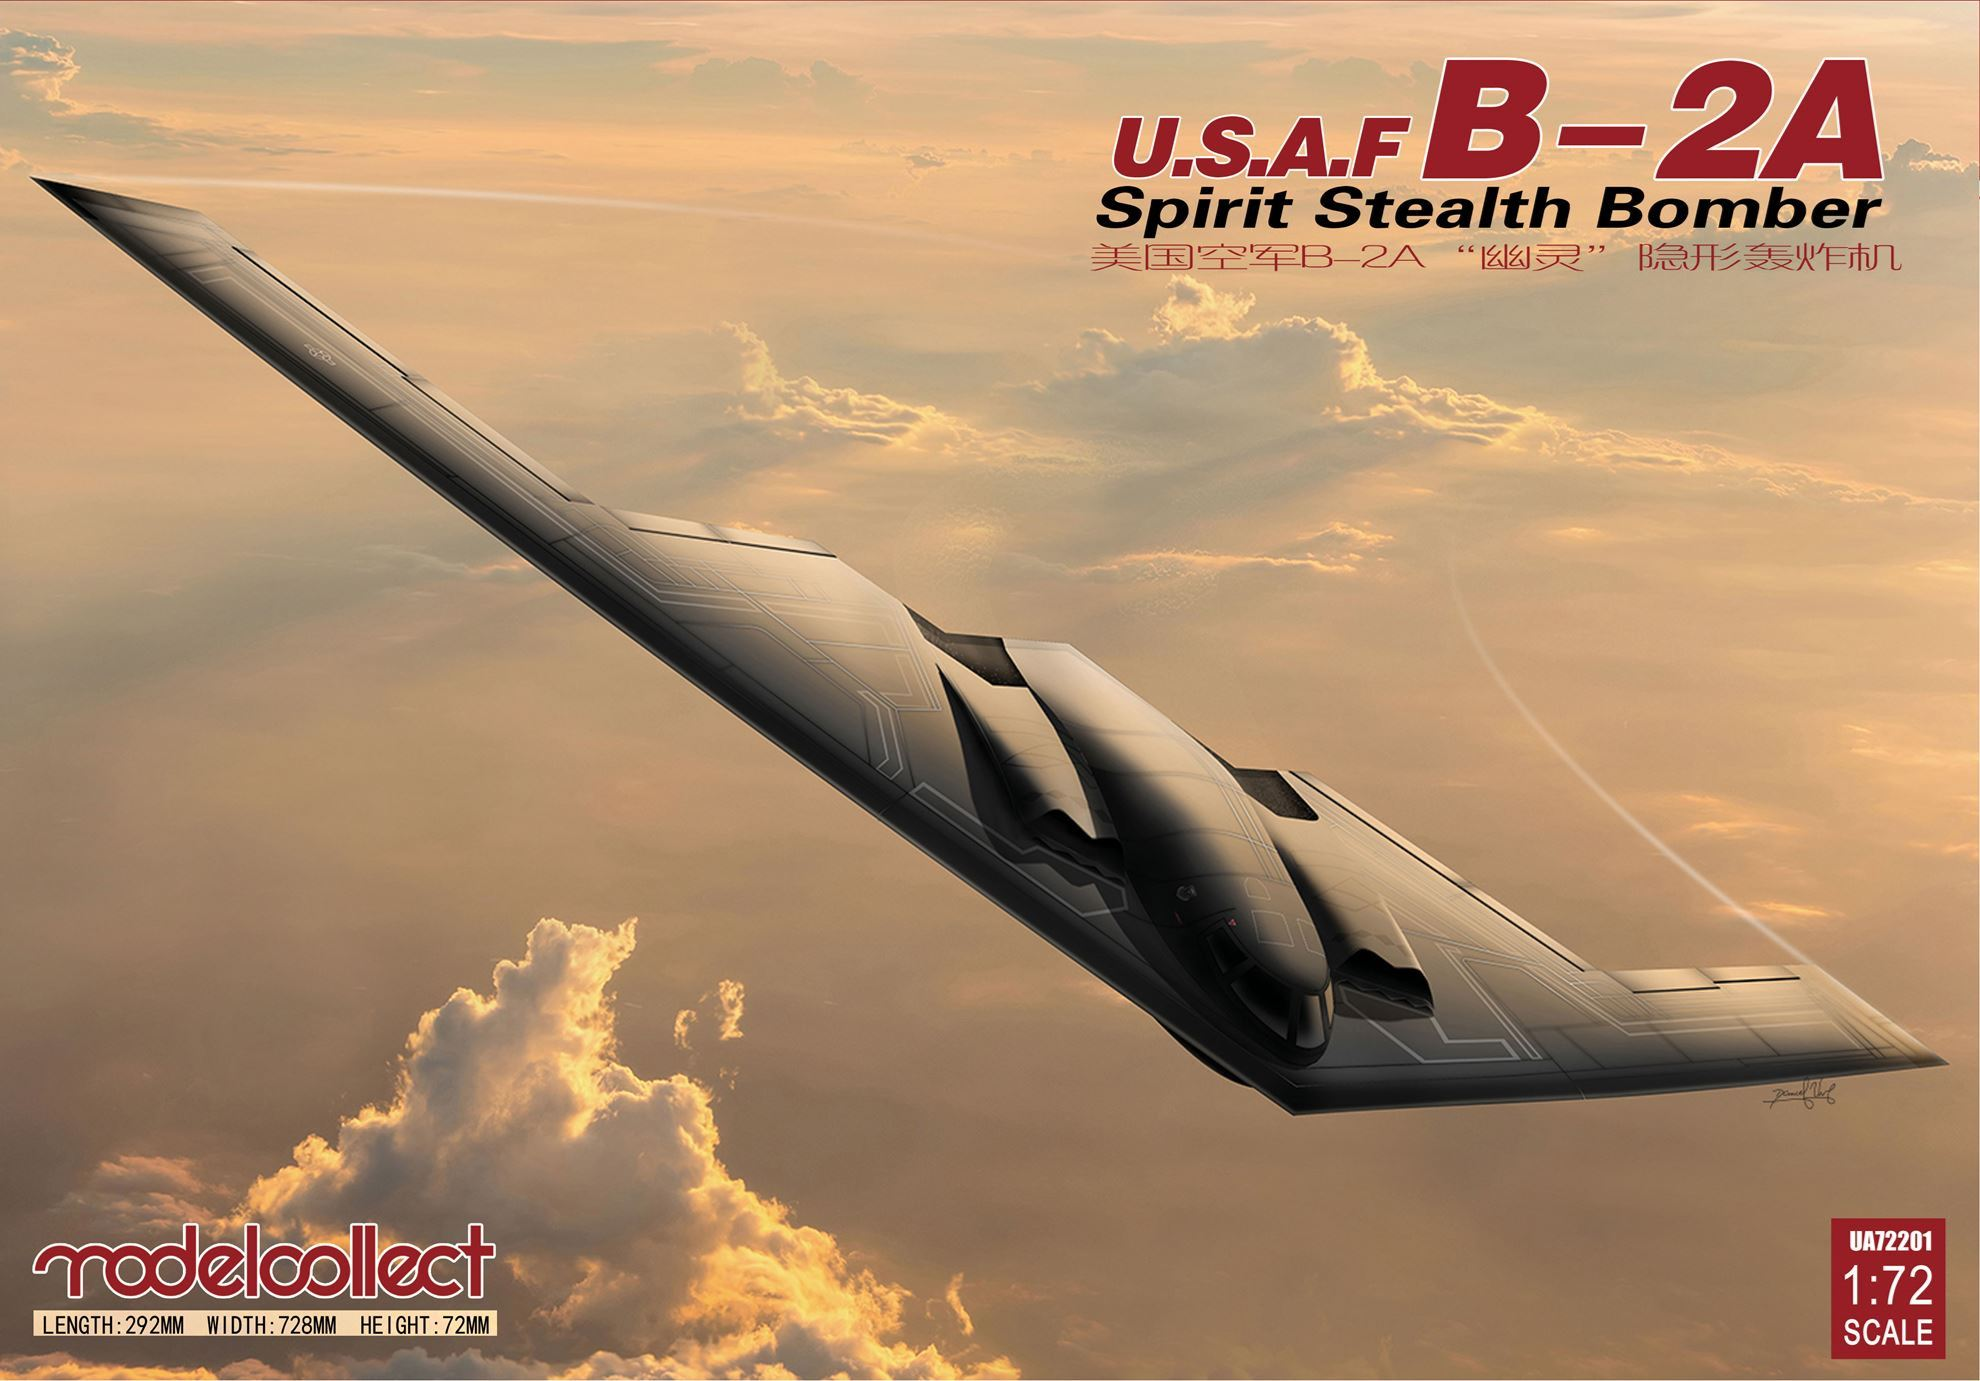 ModelCollect USAF B-2A Spirit Stealth Bomber